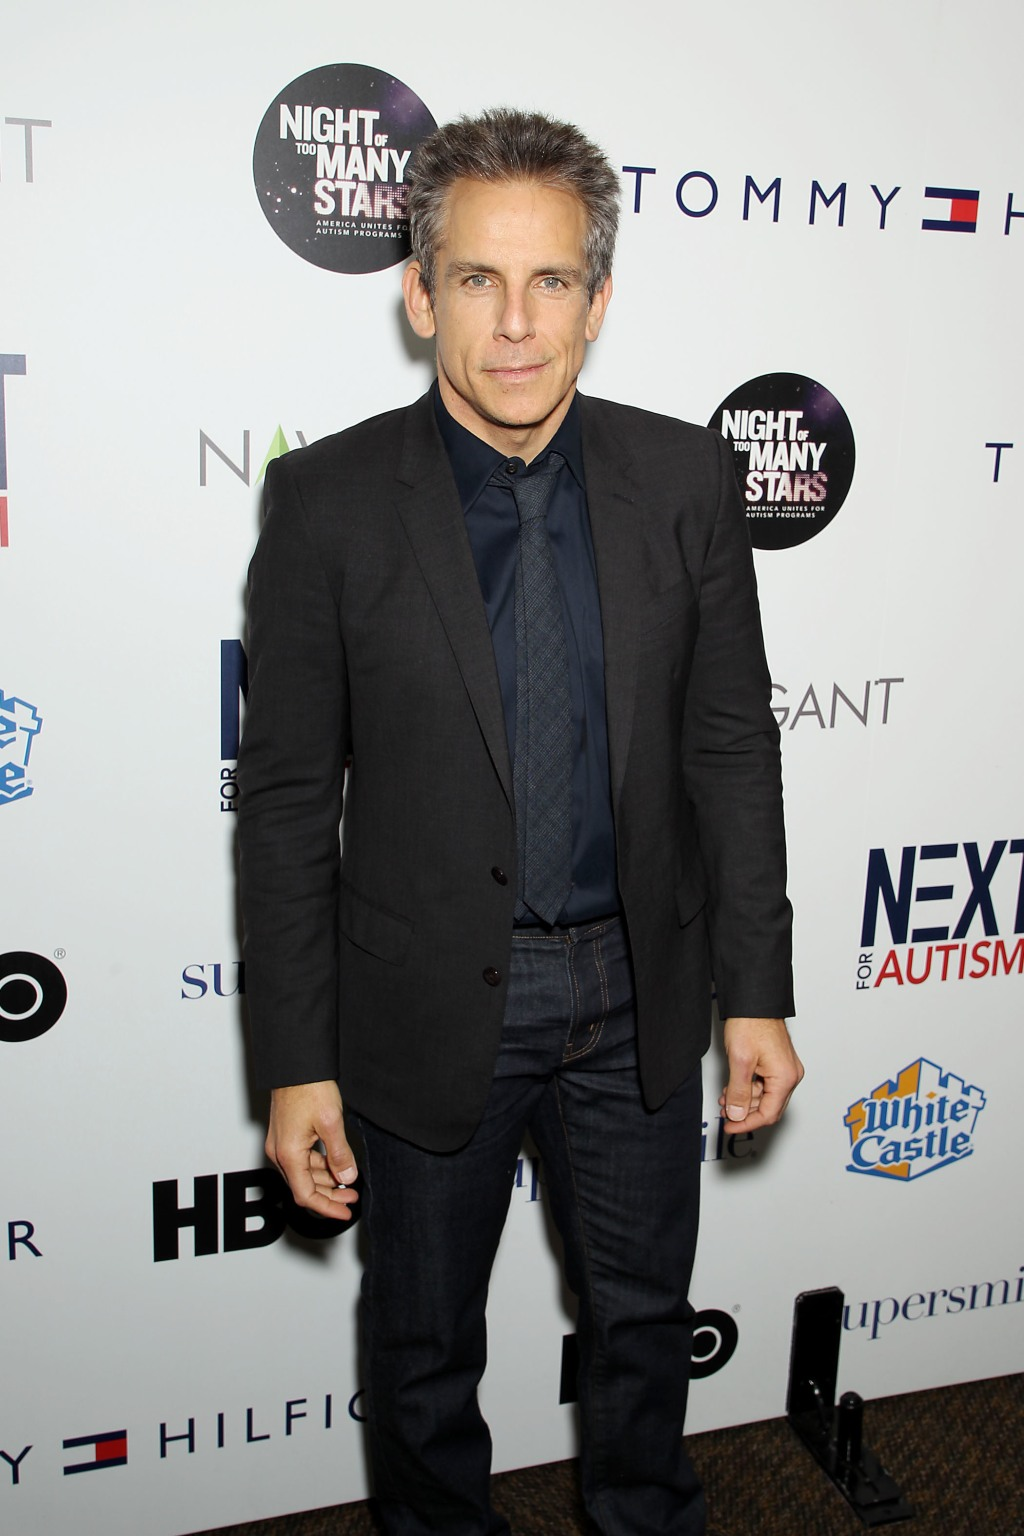 Ben Stiller turns 52